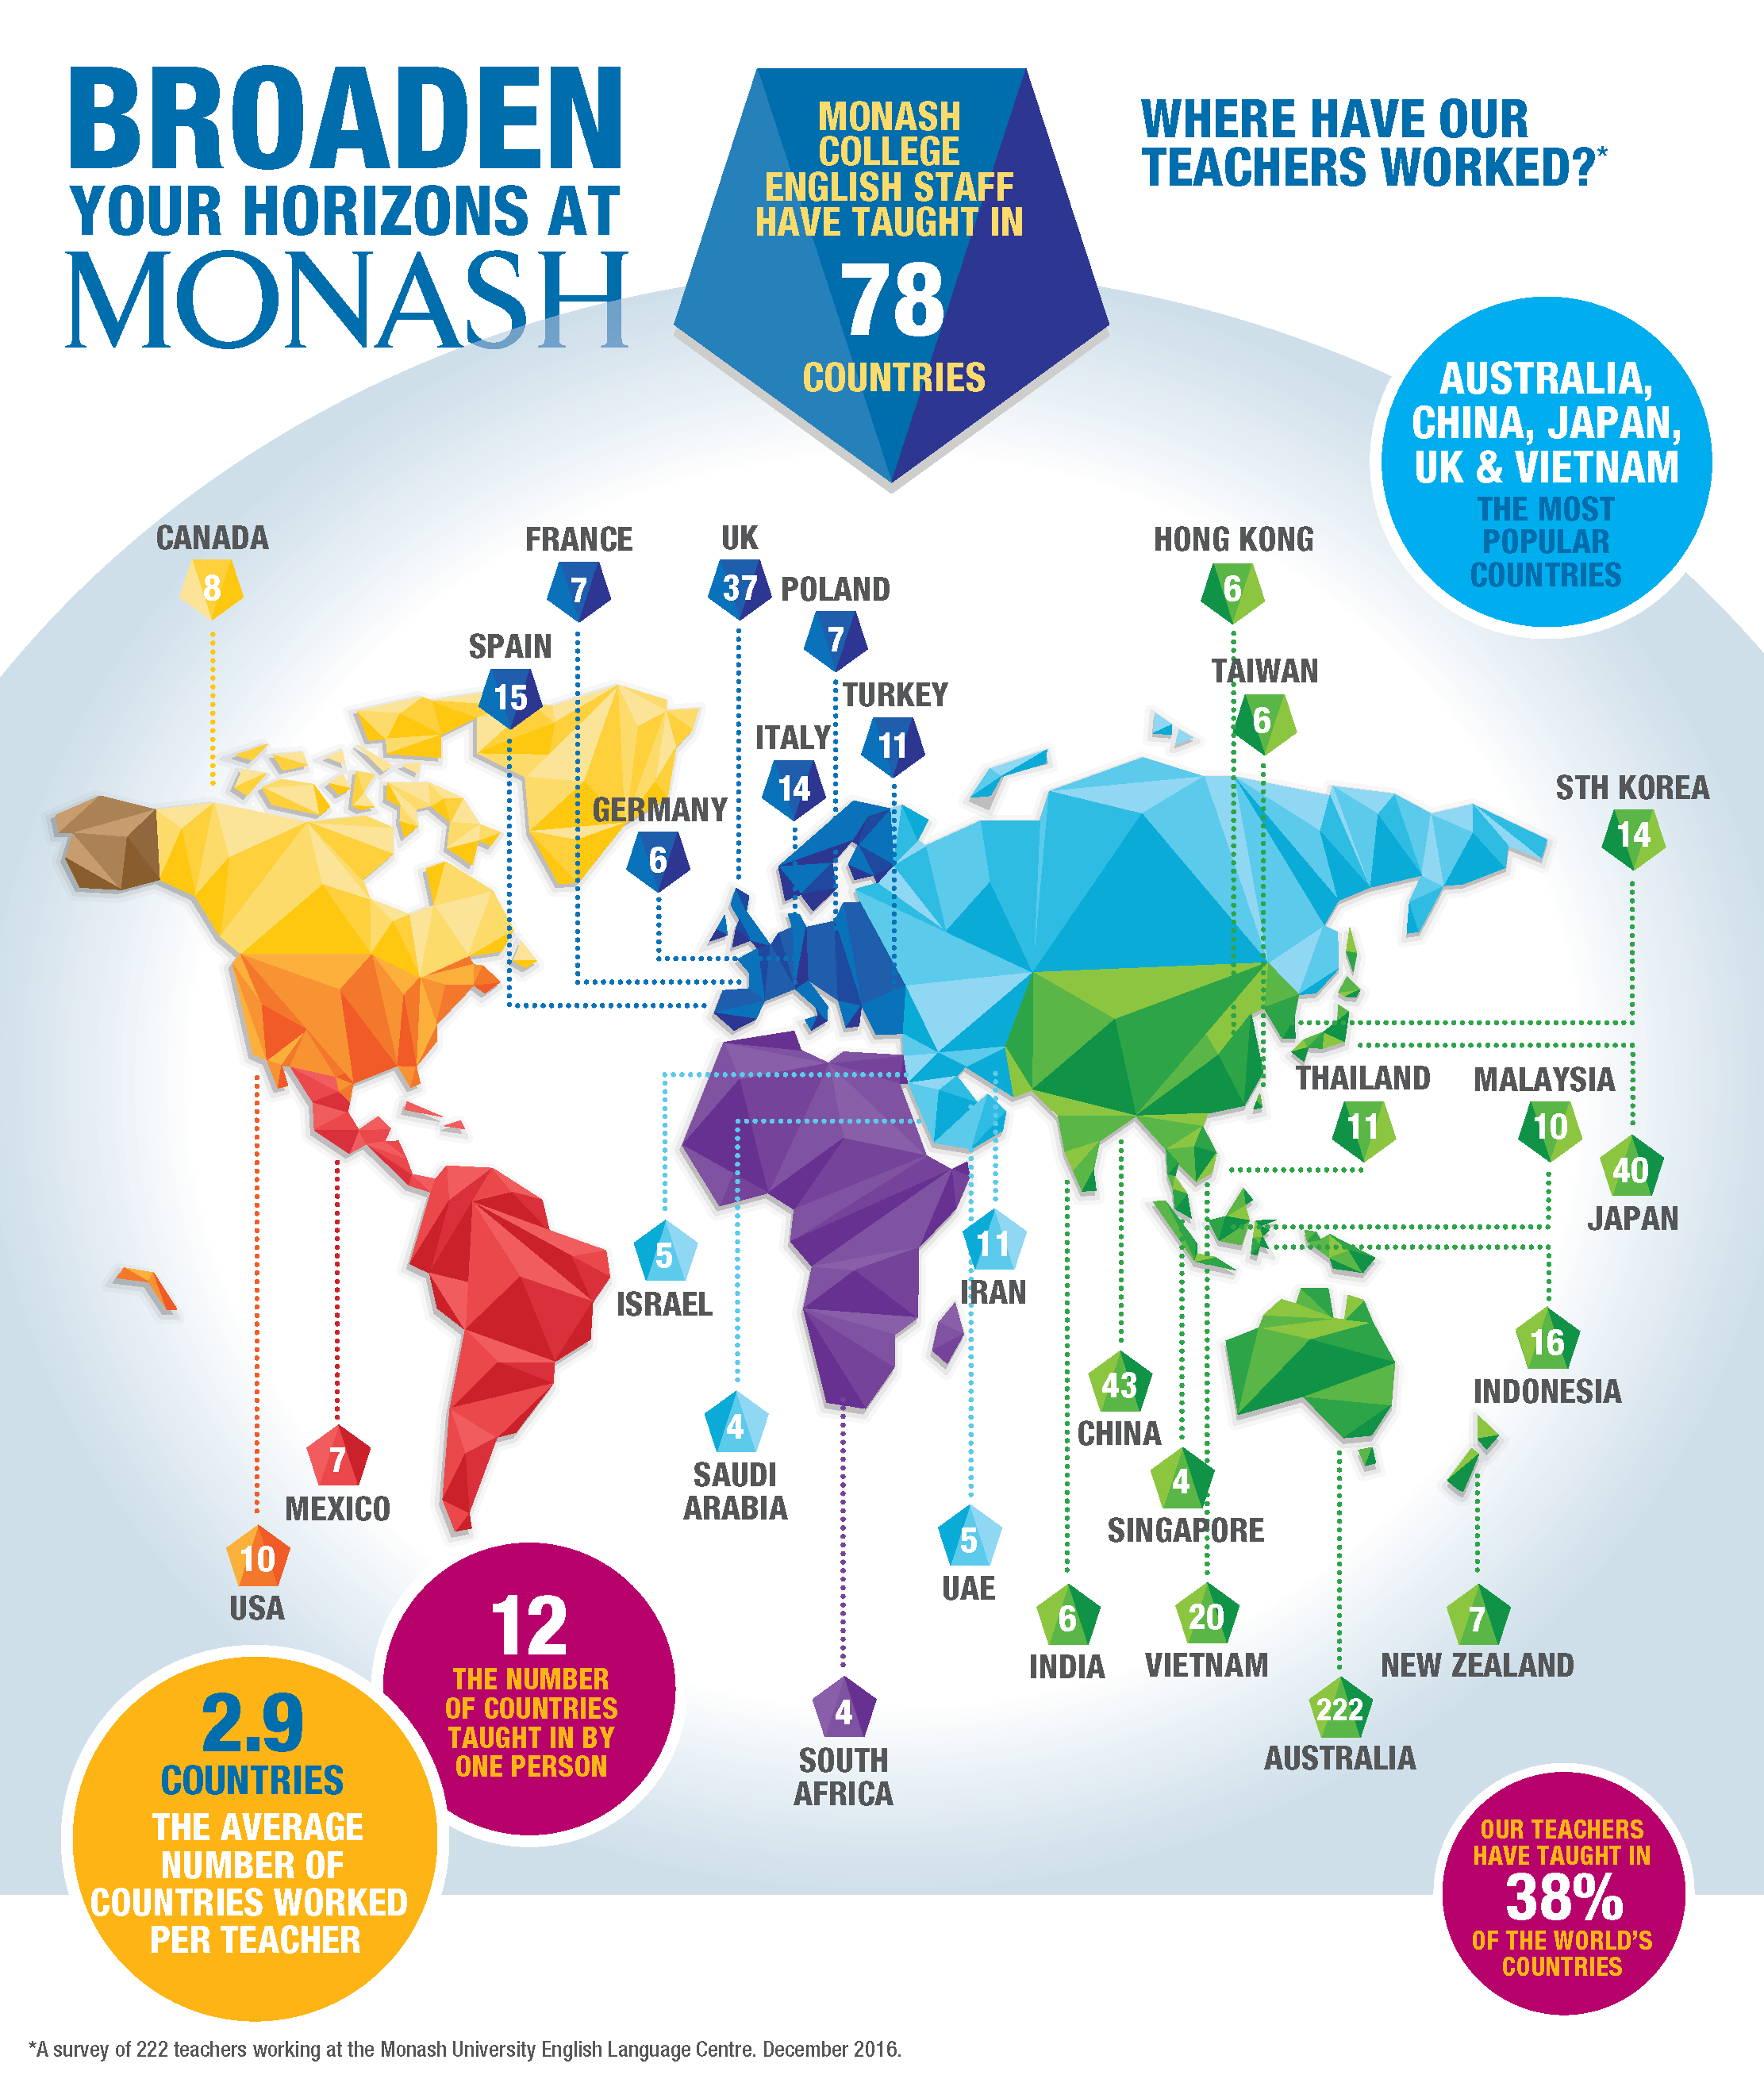 Map showing countries in which Monash College English staff have taught